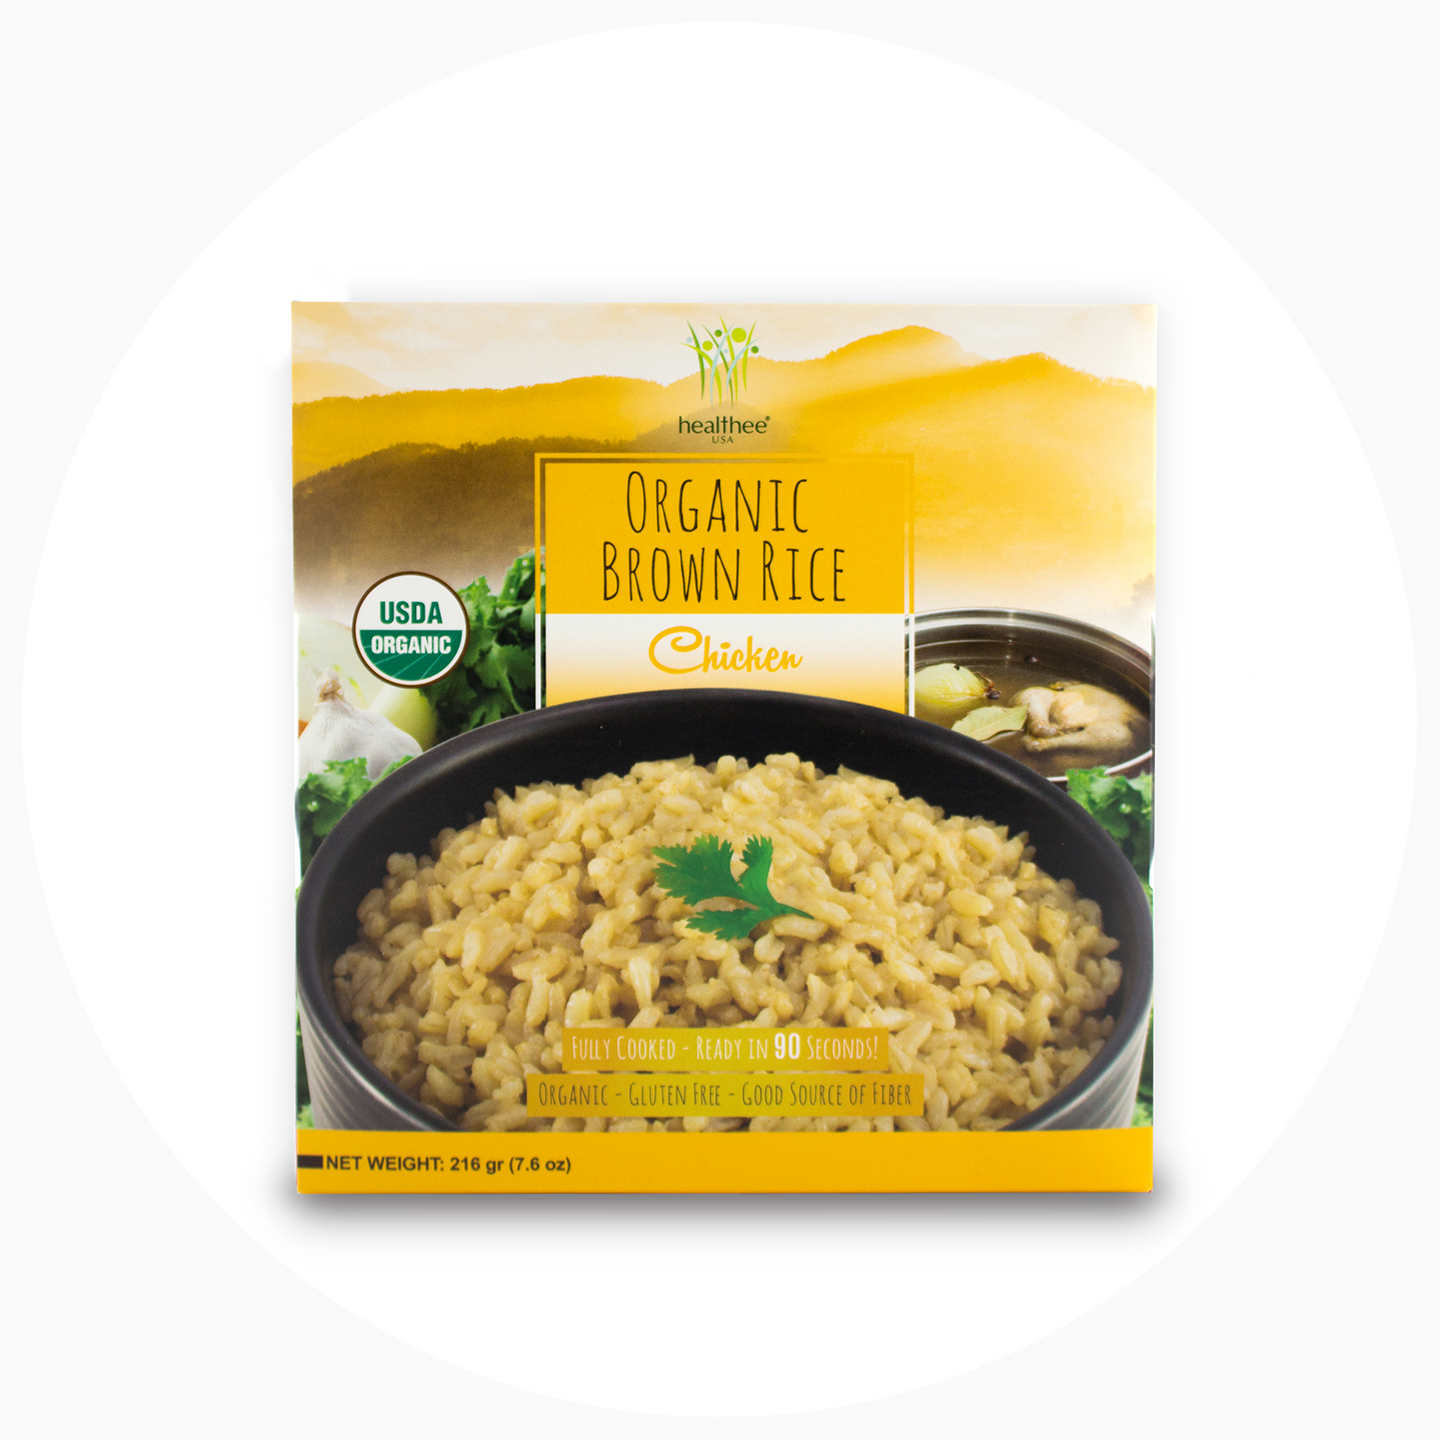 Healthee Organic Chicken Brown Rice - Precooked With Nutrients and Organic Grains